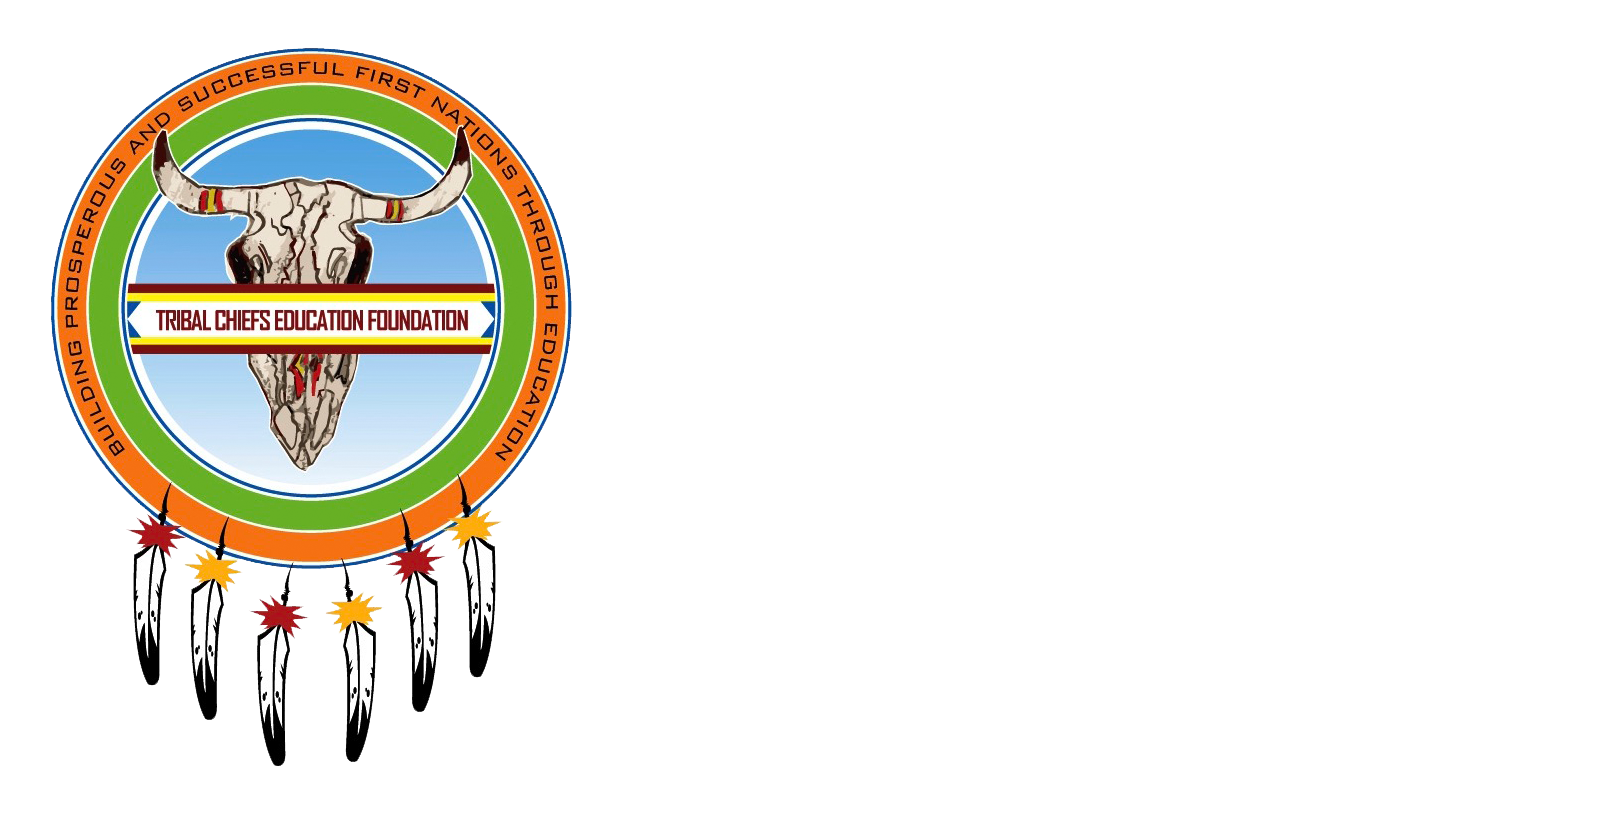 Tribal Chiefs Education Foundation